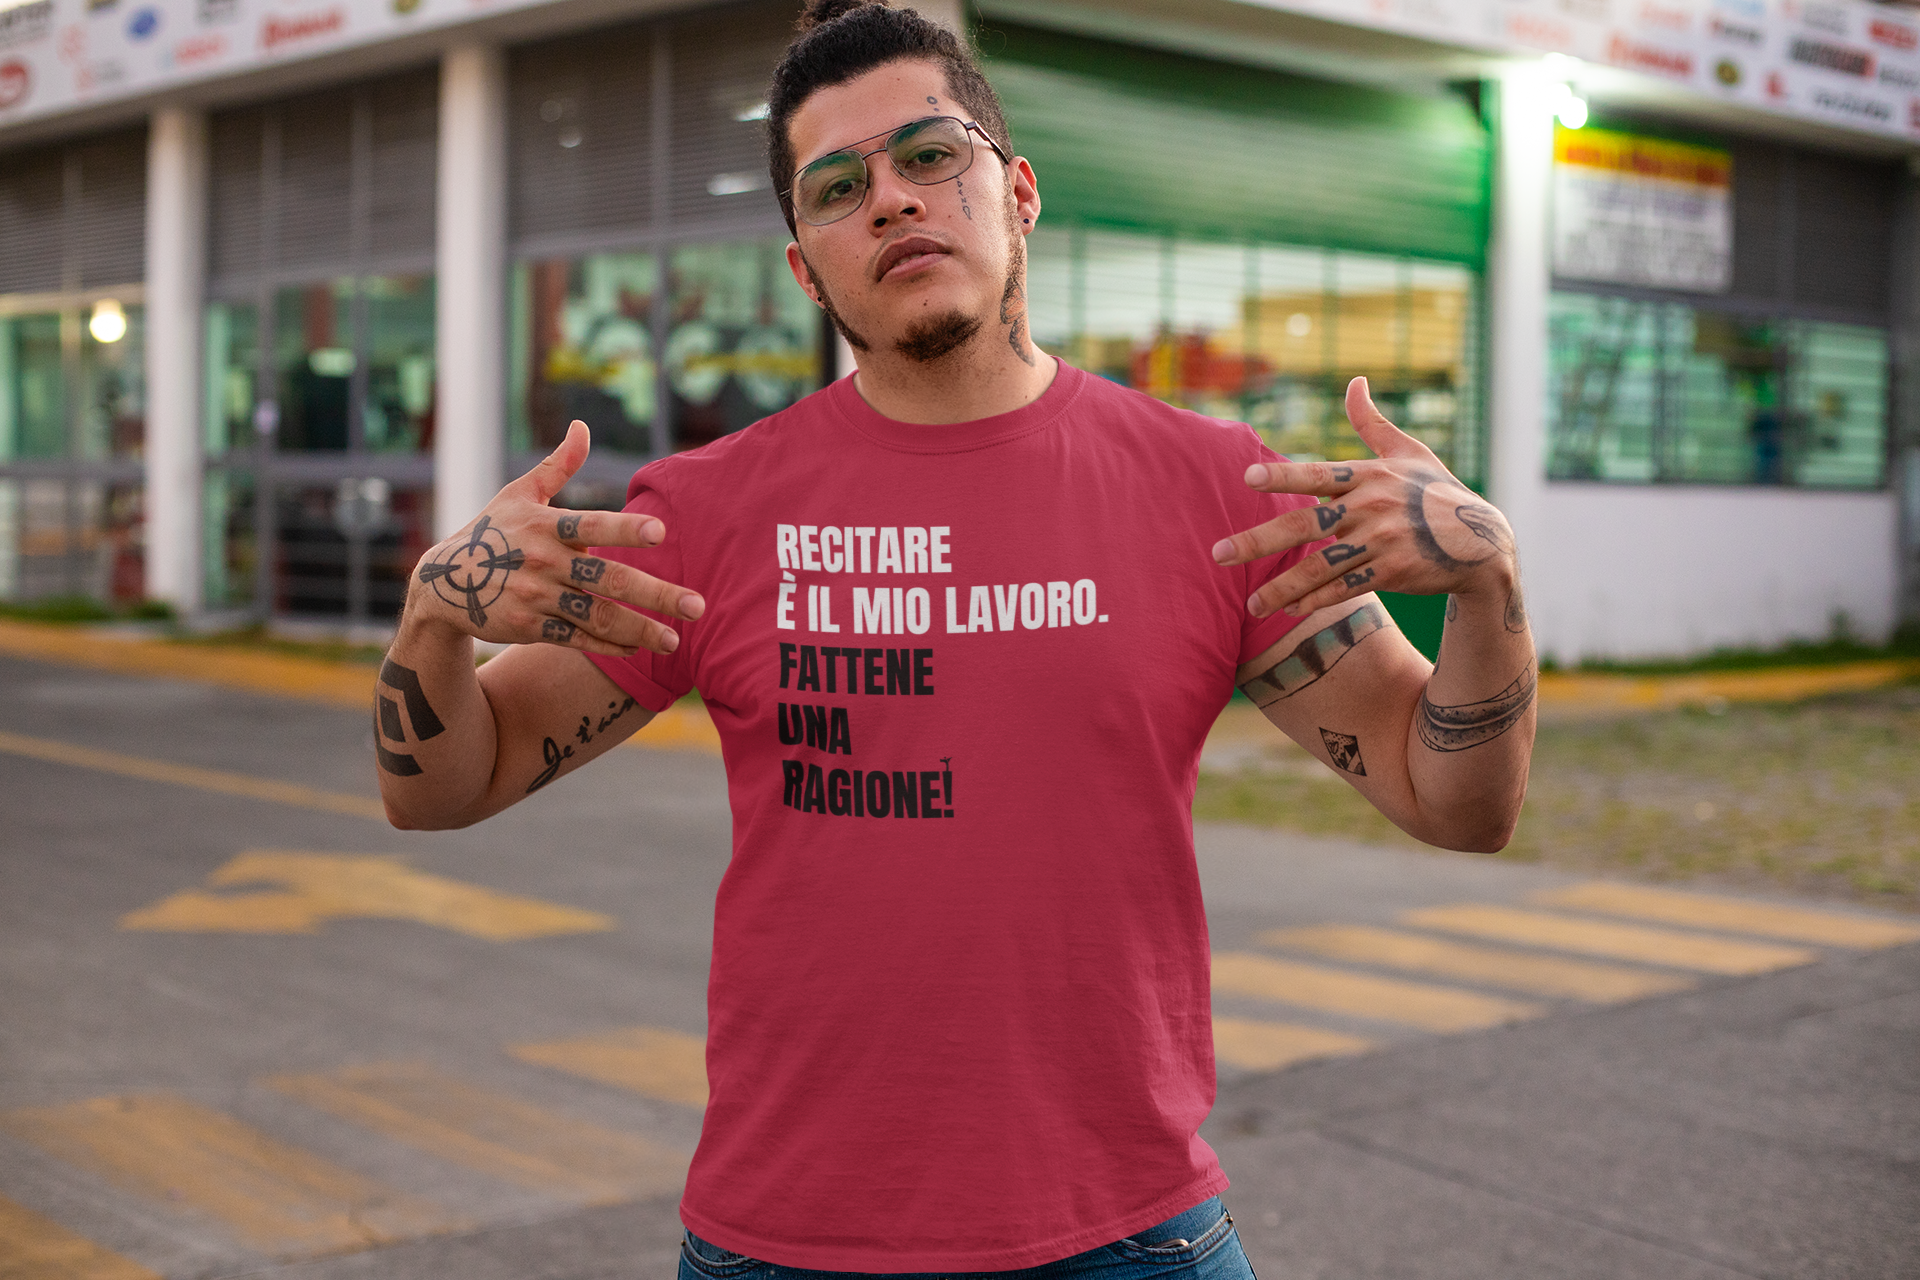 t-shirt-mockup-of-a-tattooed-man-showing-swag-on-the-street-32822